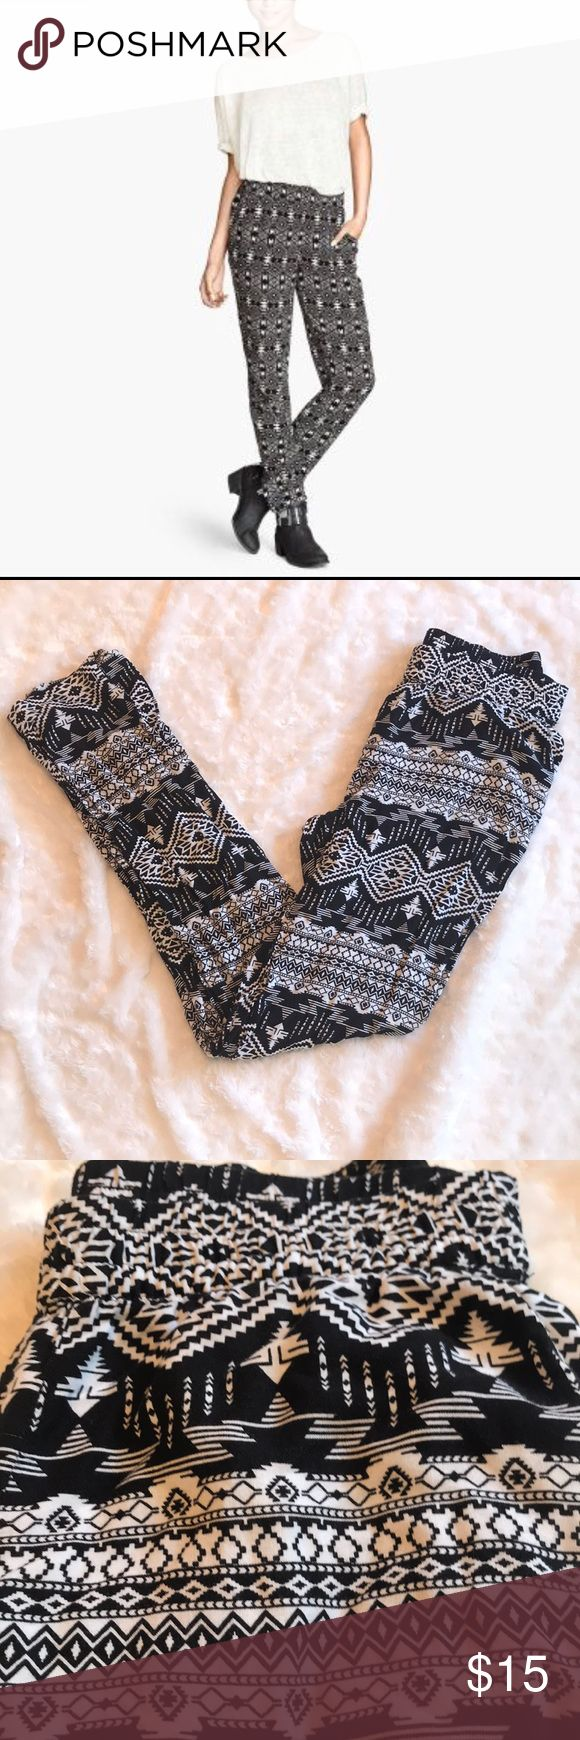 """H&m divided Aztec pants blk white size 4 Only wore once stock photo are what pants look like but these look to have a little more white.  Inseam around 27.5"""" H&M Pants Straight Leg"""